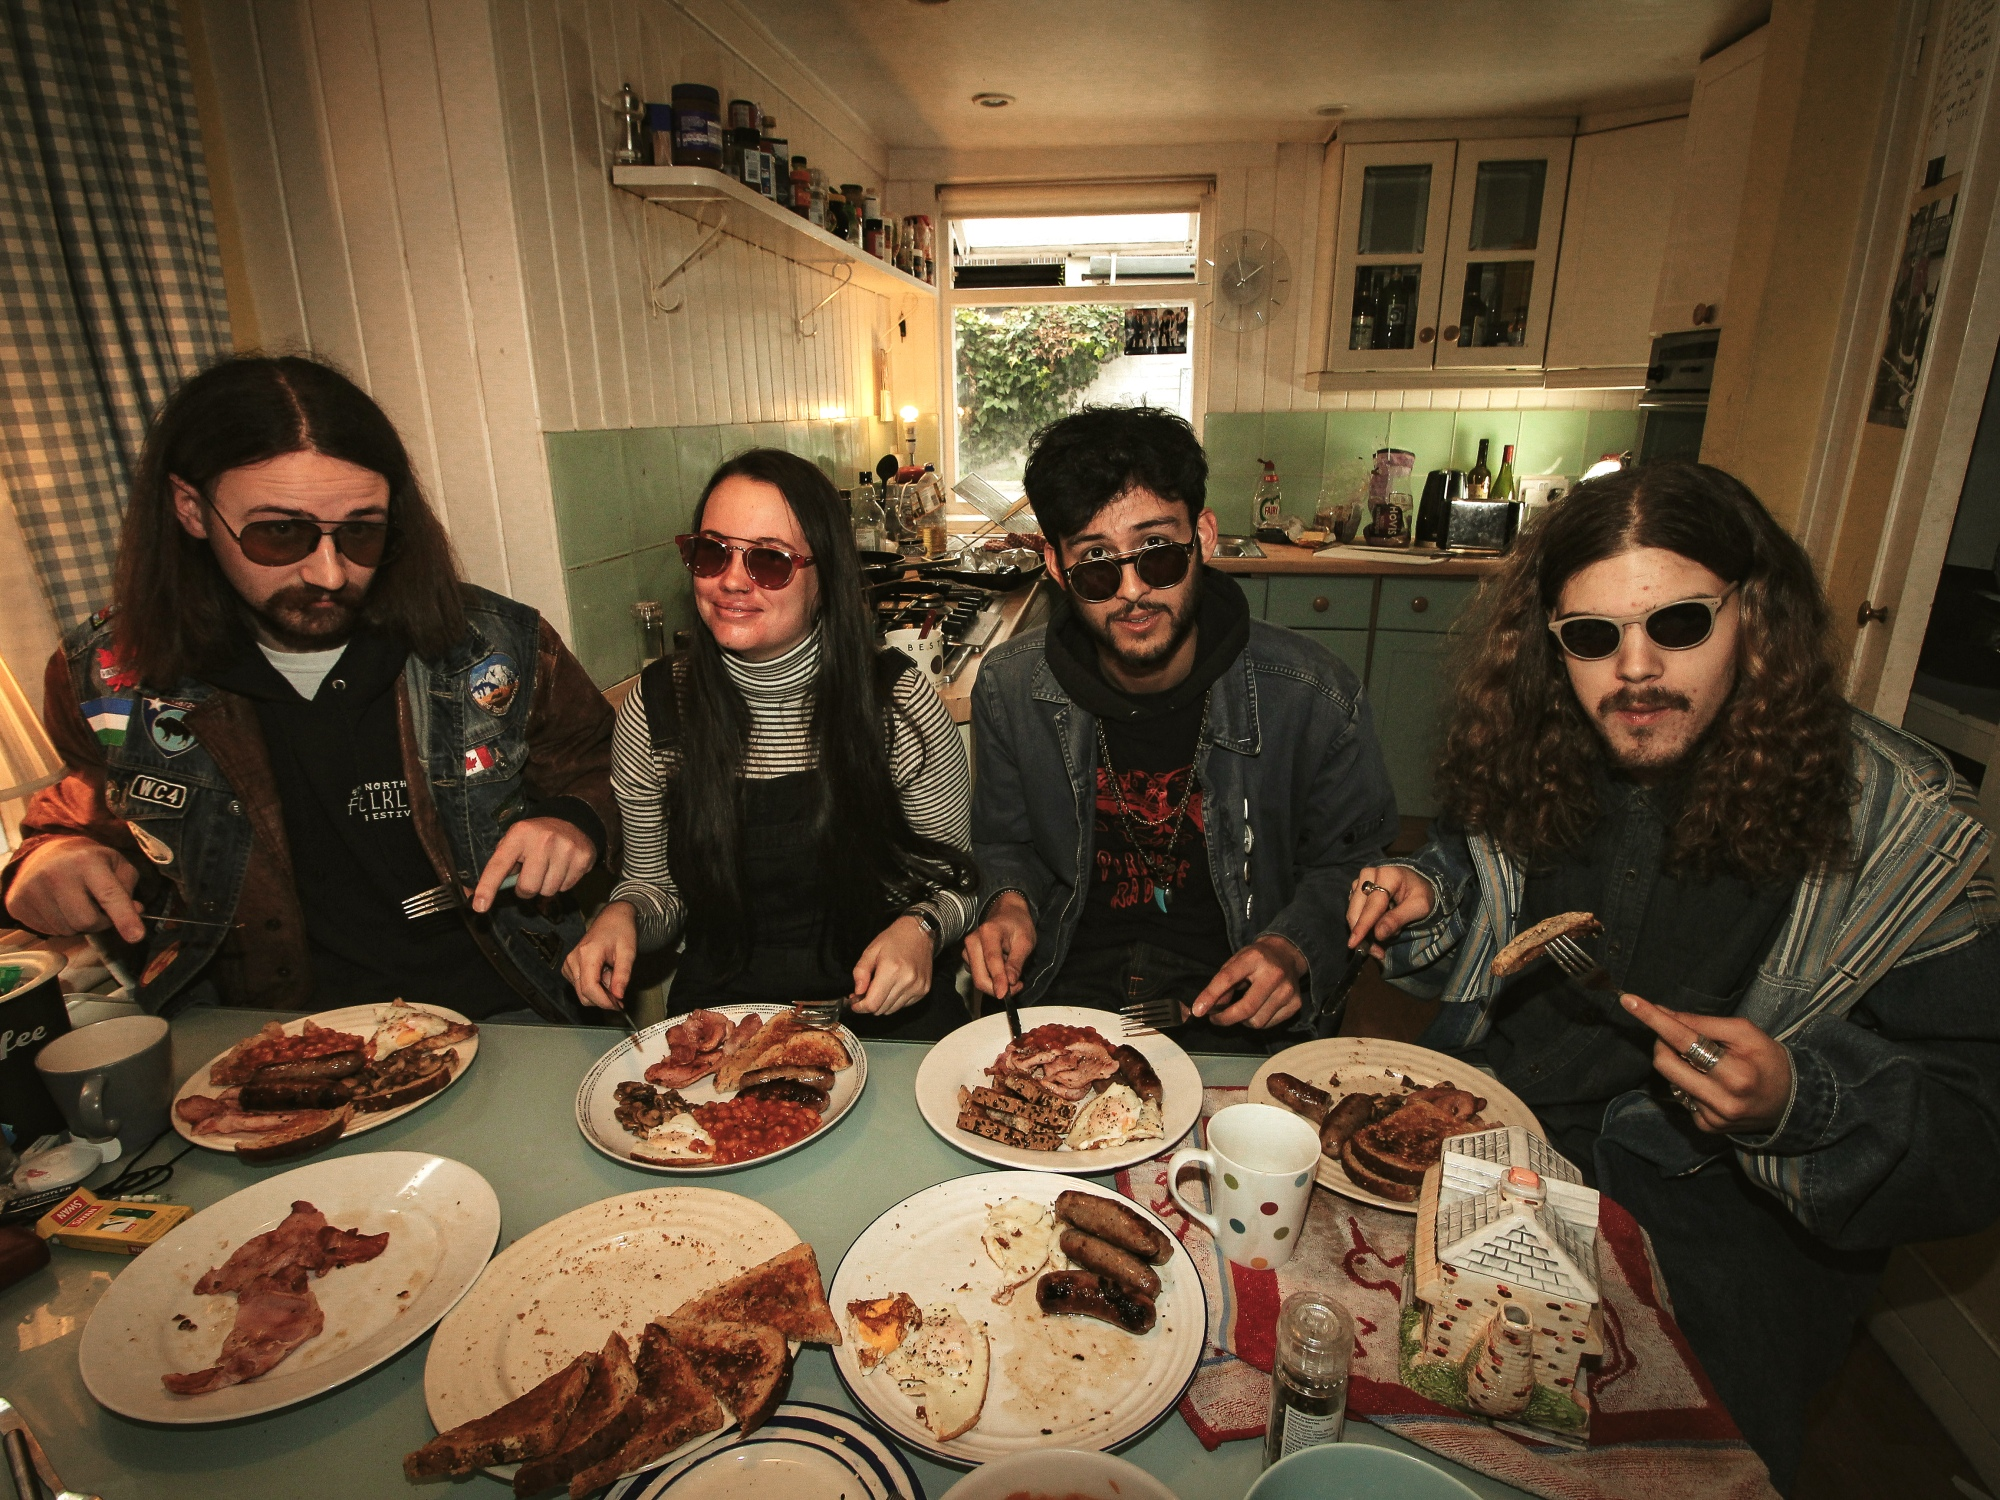 Tugboat Captain – 'Be Strong, Smoke Less' – The DIY Pop